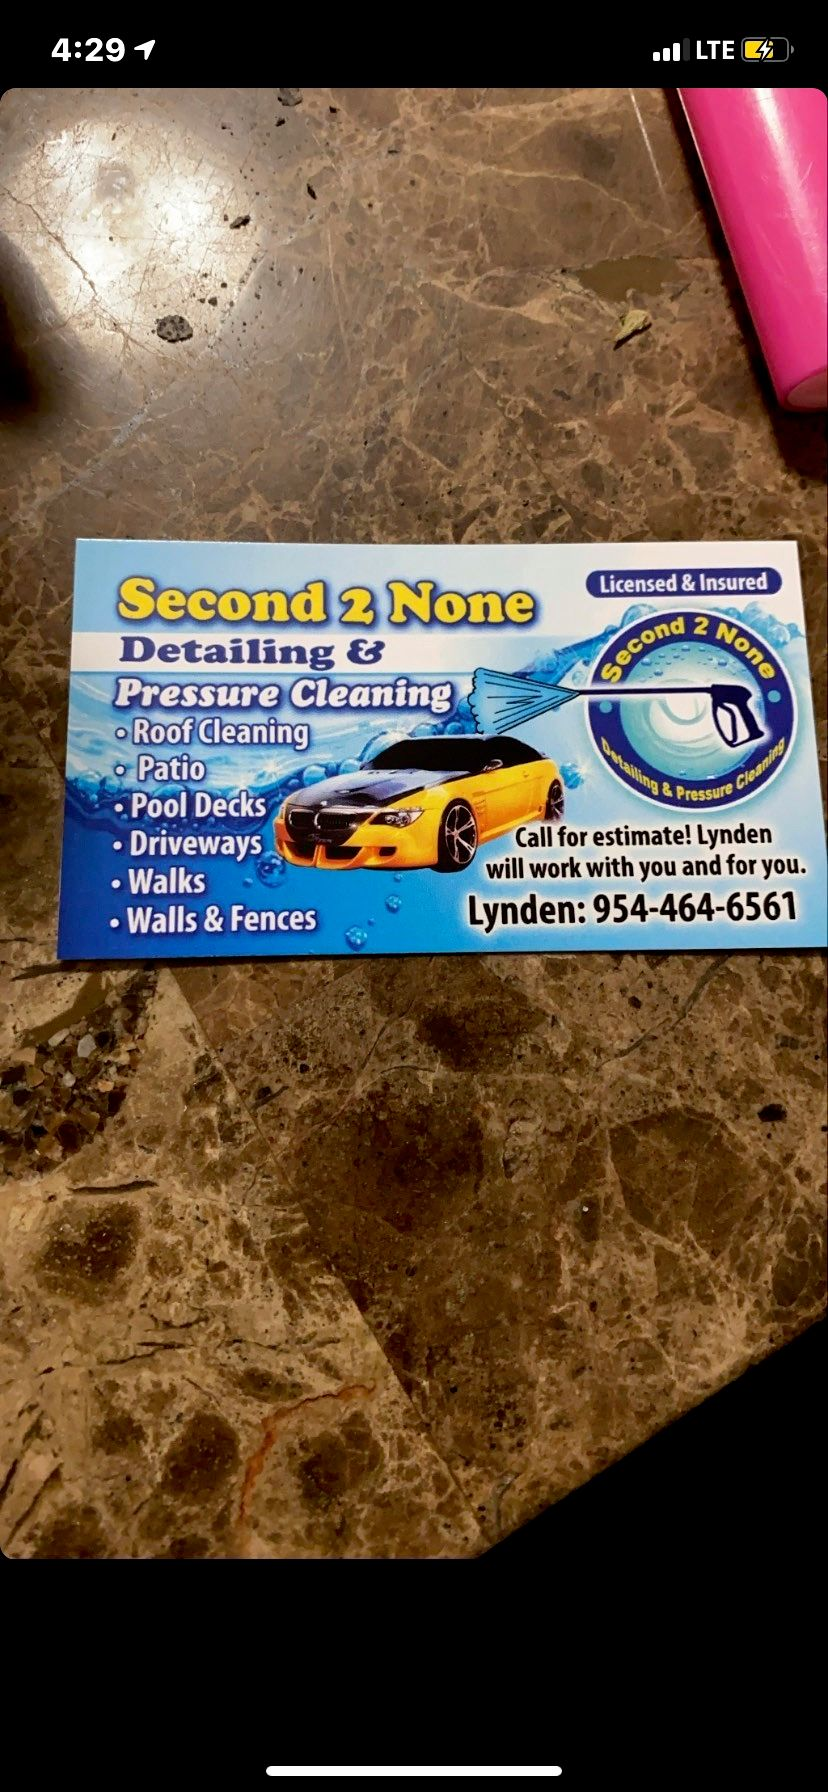 Second2None Auto Detailing & Pressure Cleaning